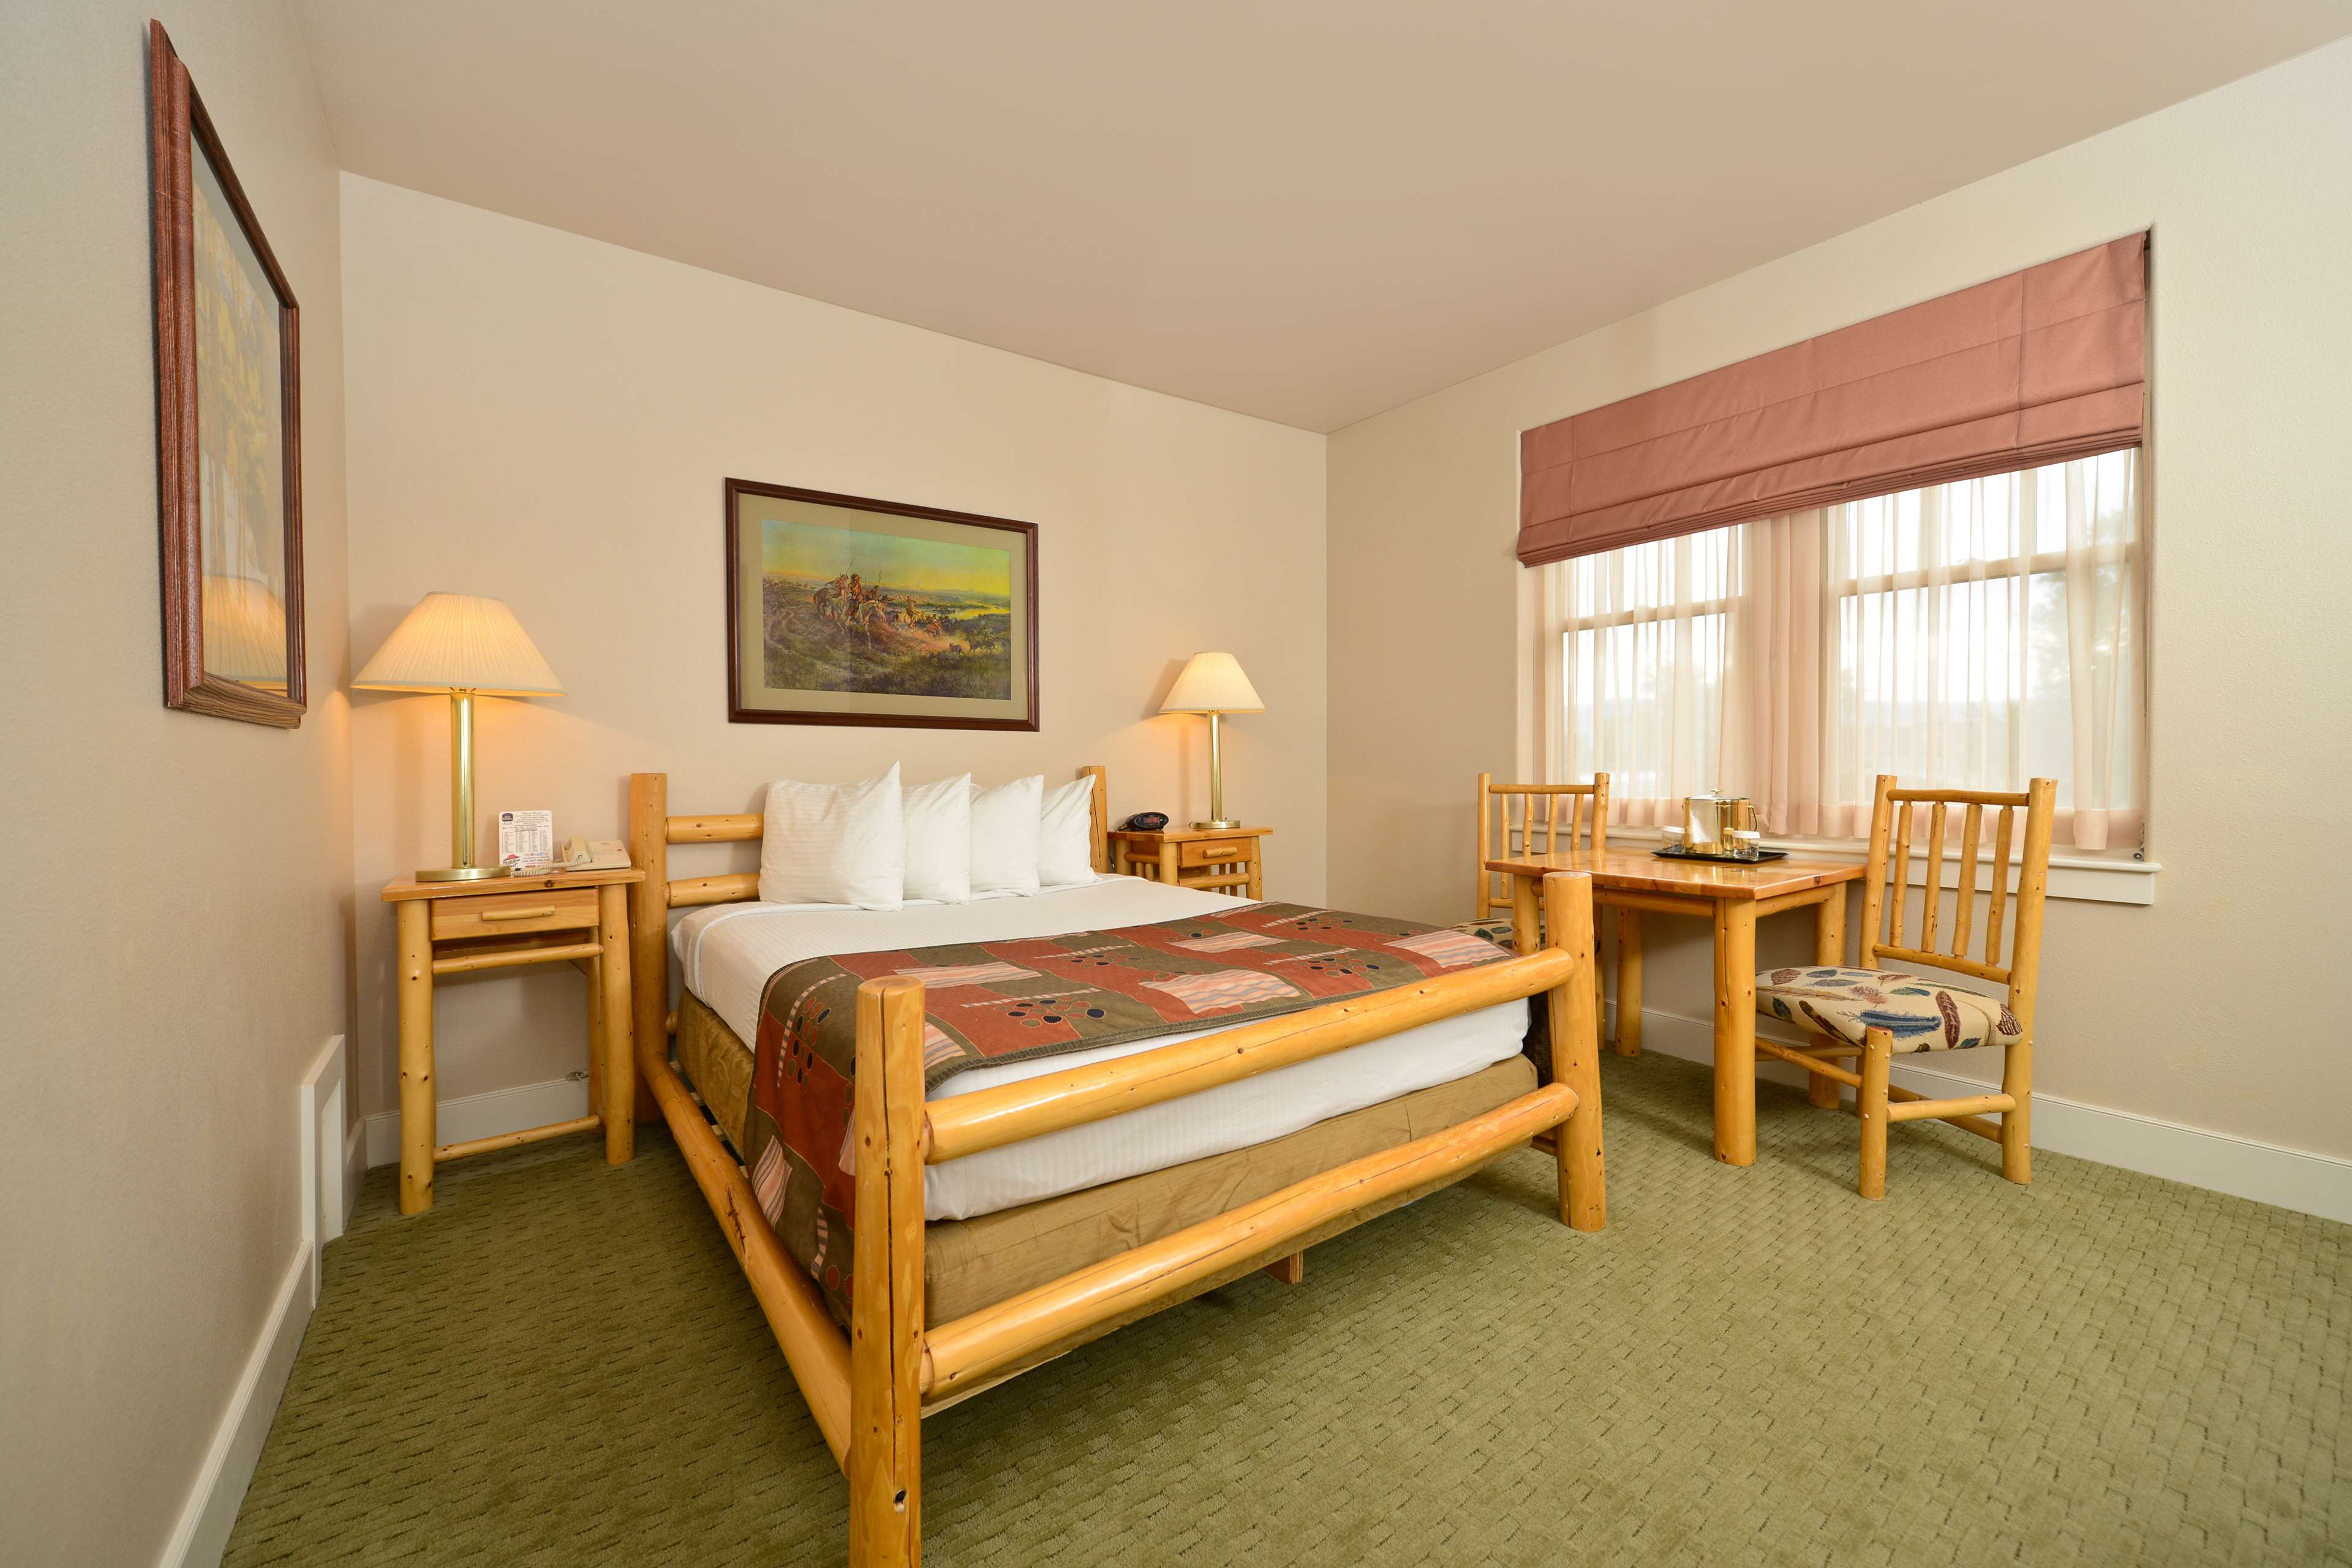 Best Western Plus Plaza Hotel image 24